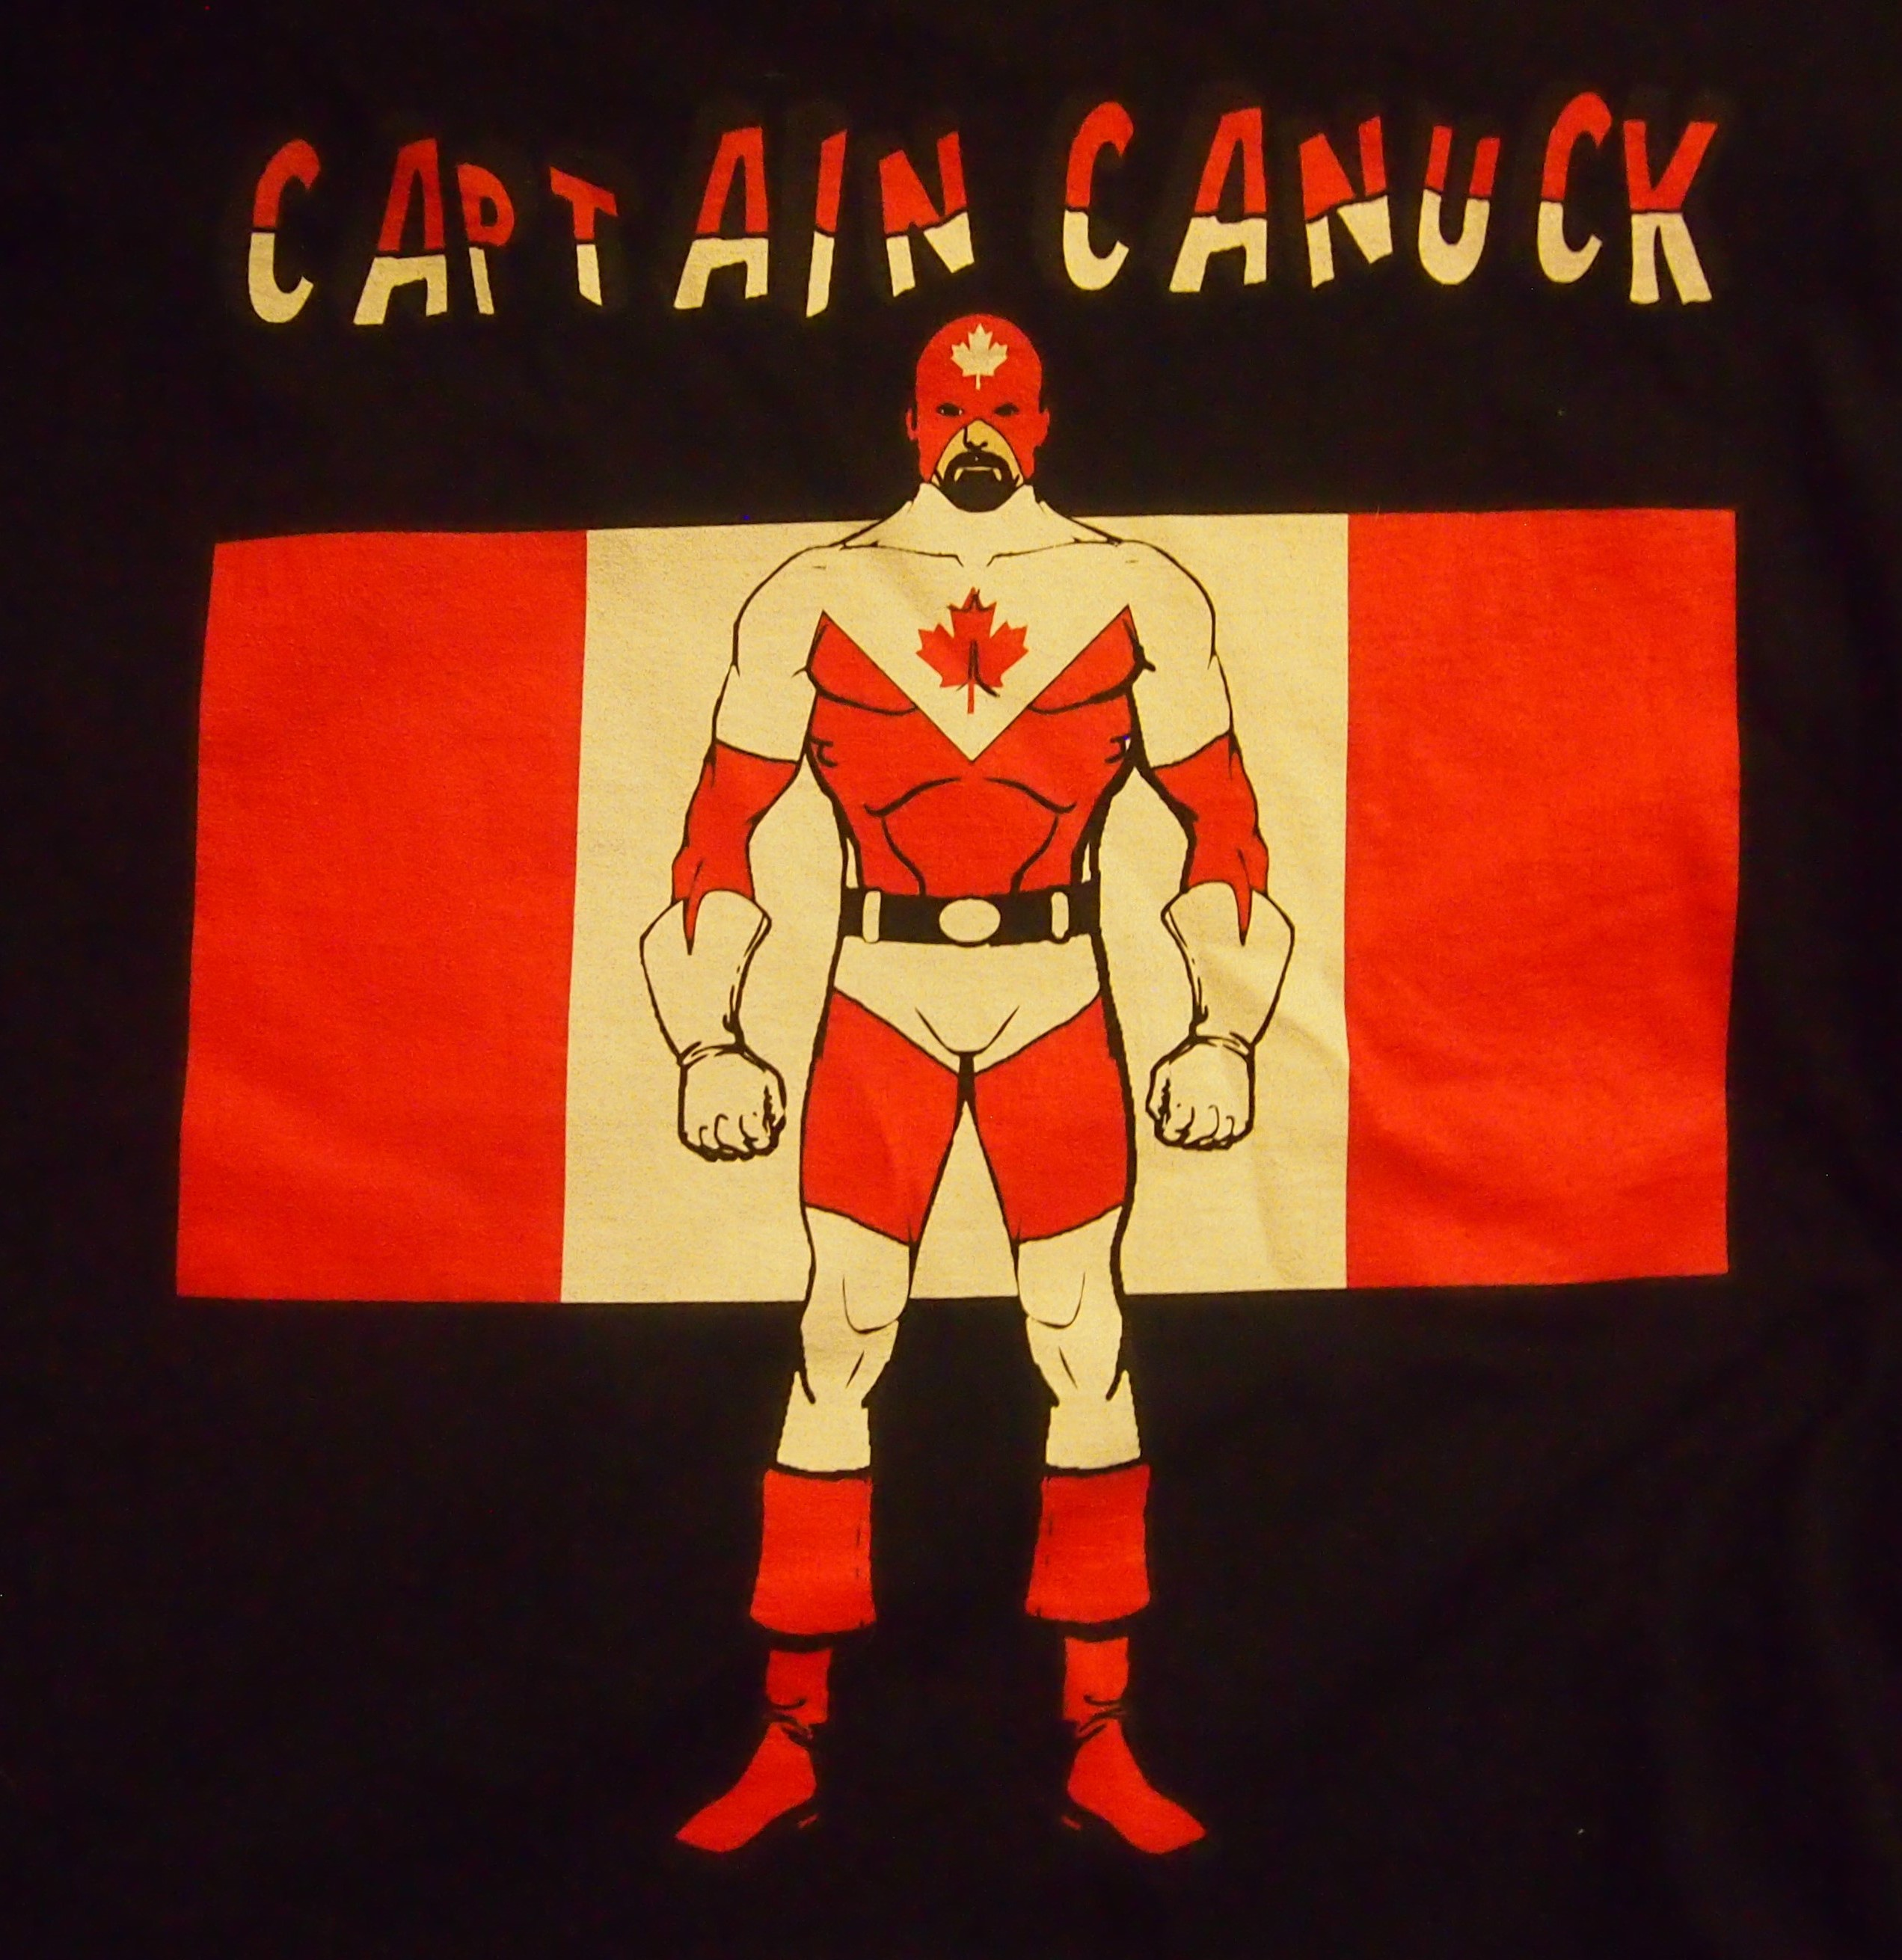 Captain Canuck!